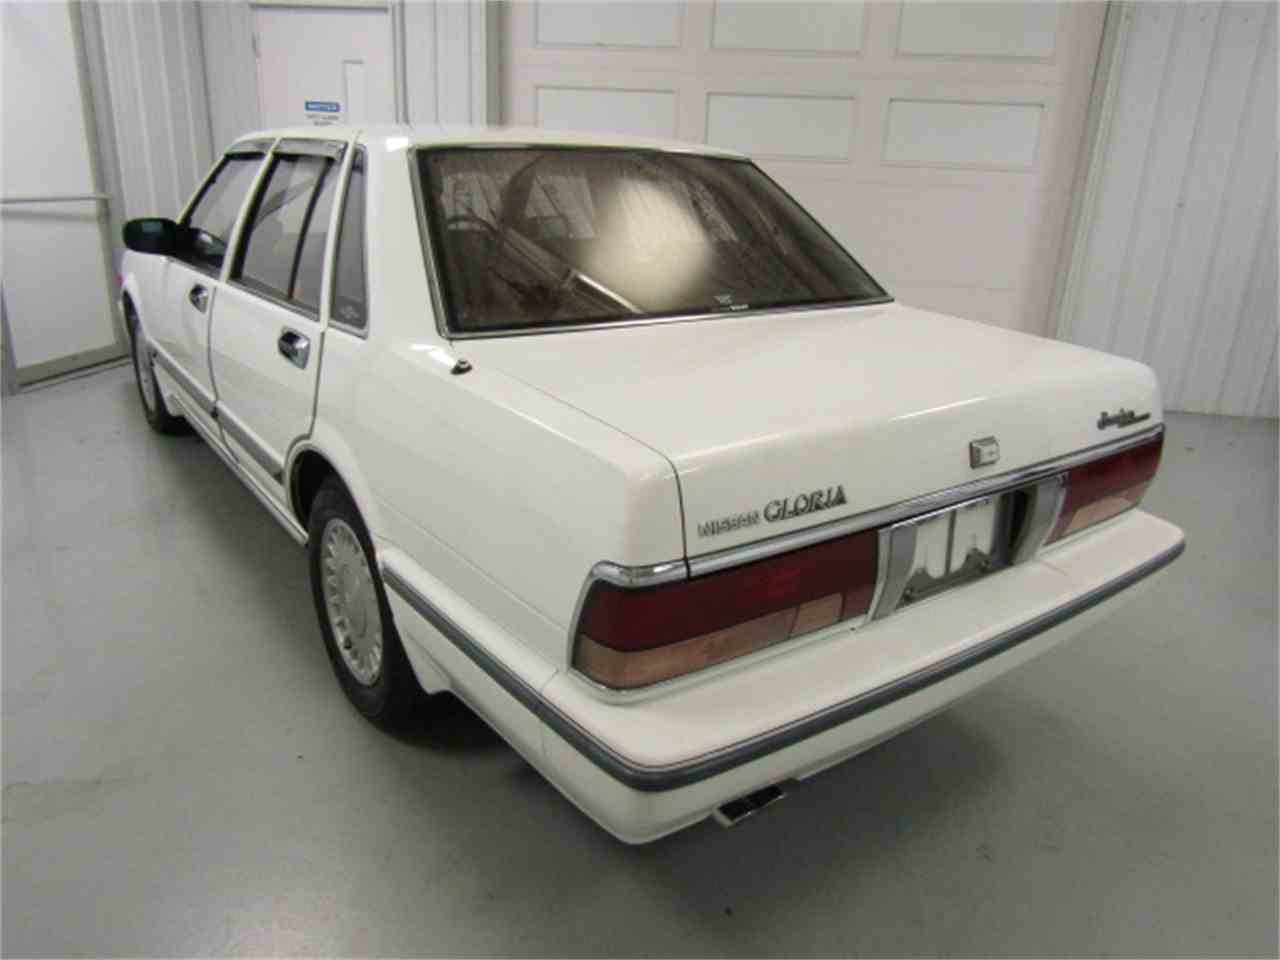 Large Picture of 1991 Nissan Gloria located in Christiansburg Virginia - $6,999.00 Offered by Duncan Imports & Classic Cars - JZ2U